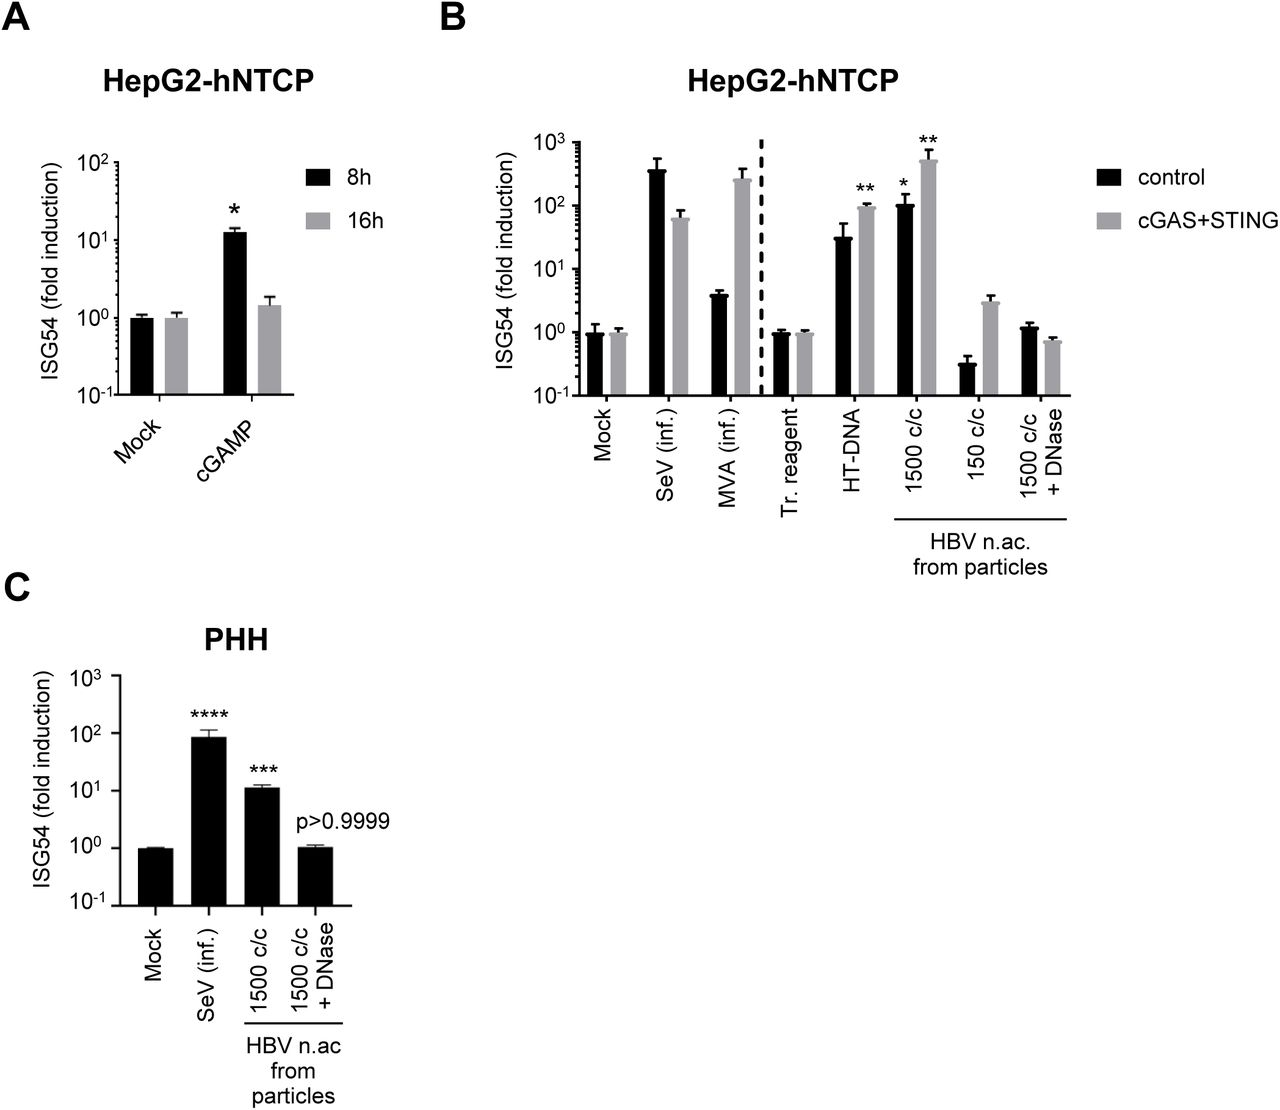 Hepatocytes respond to foreign DNA HepG2-hNTCP (A), HepG2-hNTCP-control or -cGAS/STING (B) or PHH (C) were stimulated with cGAMP (A), infected (inf.) with SeV or MVA-gfp, or transfected with HT-DNA or HBV nucleic acids (c/c: copies/cells) (B, C). ISG54 mRNA fold inductions to mock (A, B left part, C) or to transfection reagent-treated cells (tr. reagent) (B, right part) was determined by RT-qPCR. Average and SEM of 4 (A), 2 (B) independent experiments in triplicates or of 4 donors in duplicates (C). ****p